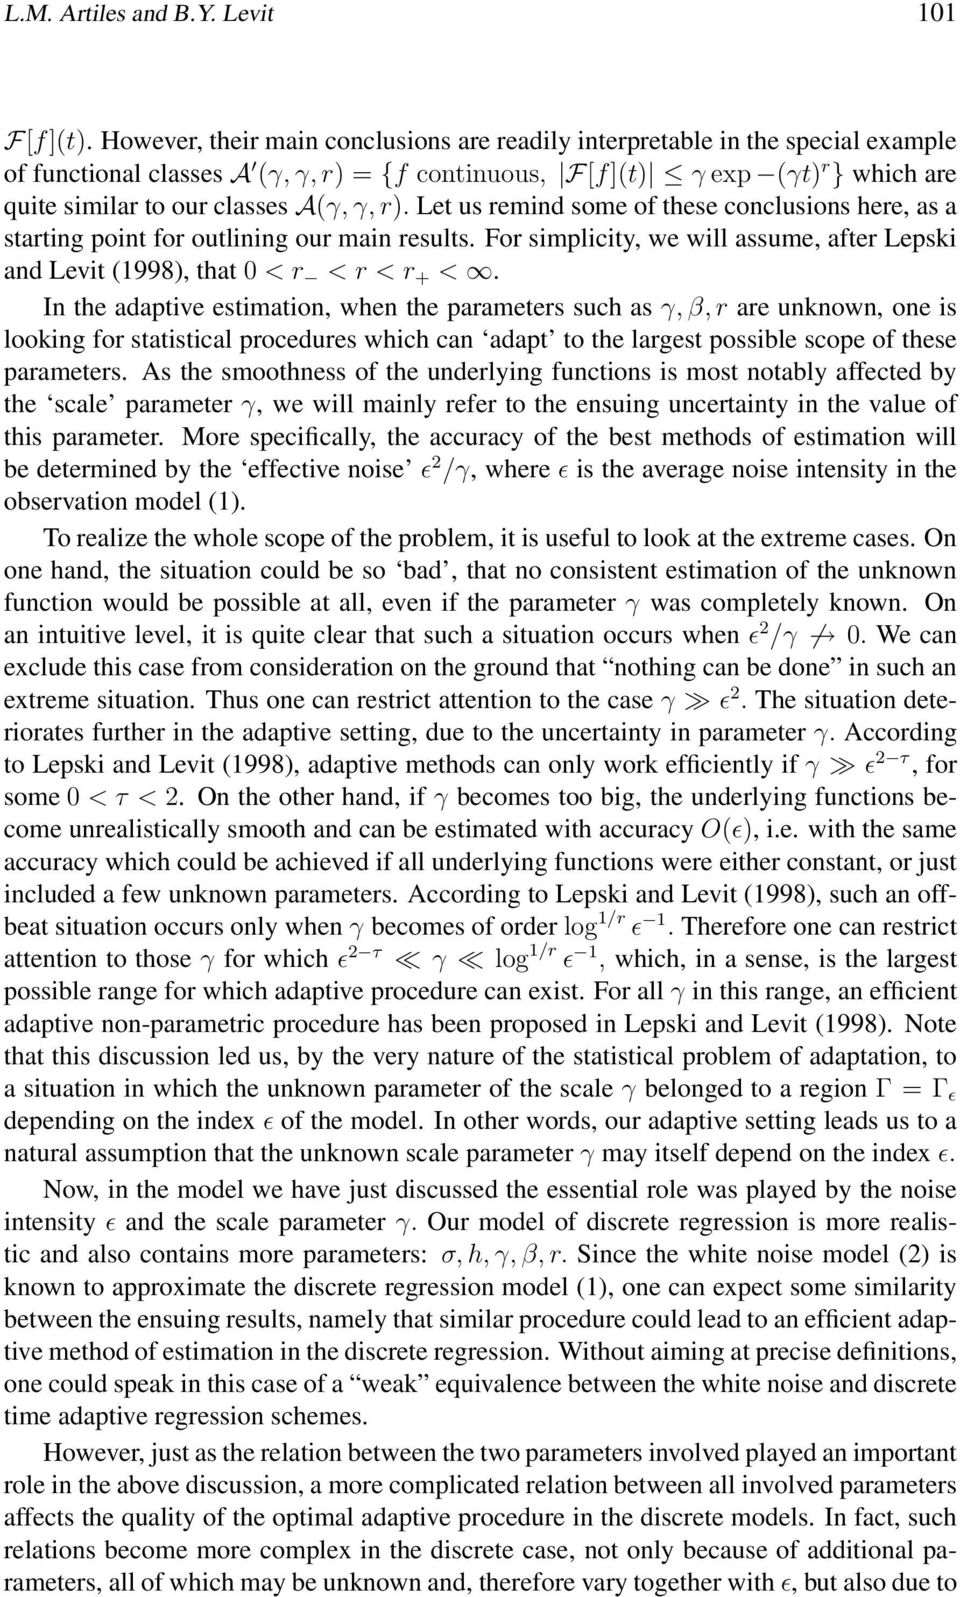 Let us remind some of tese conclusions ere, as a starting point for outlining our main results. For simplicity, we will assume, after Lepski and Levit 1998, tat 0 < r < r < r + <.